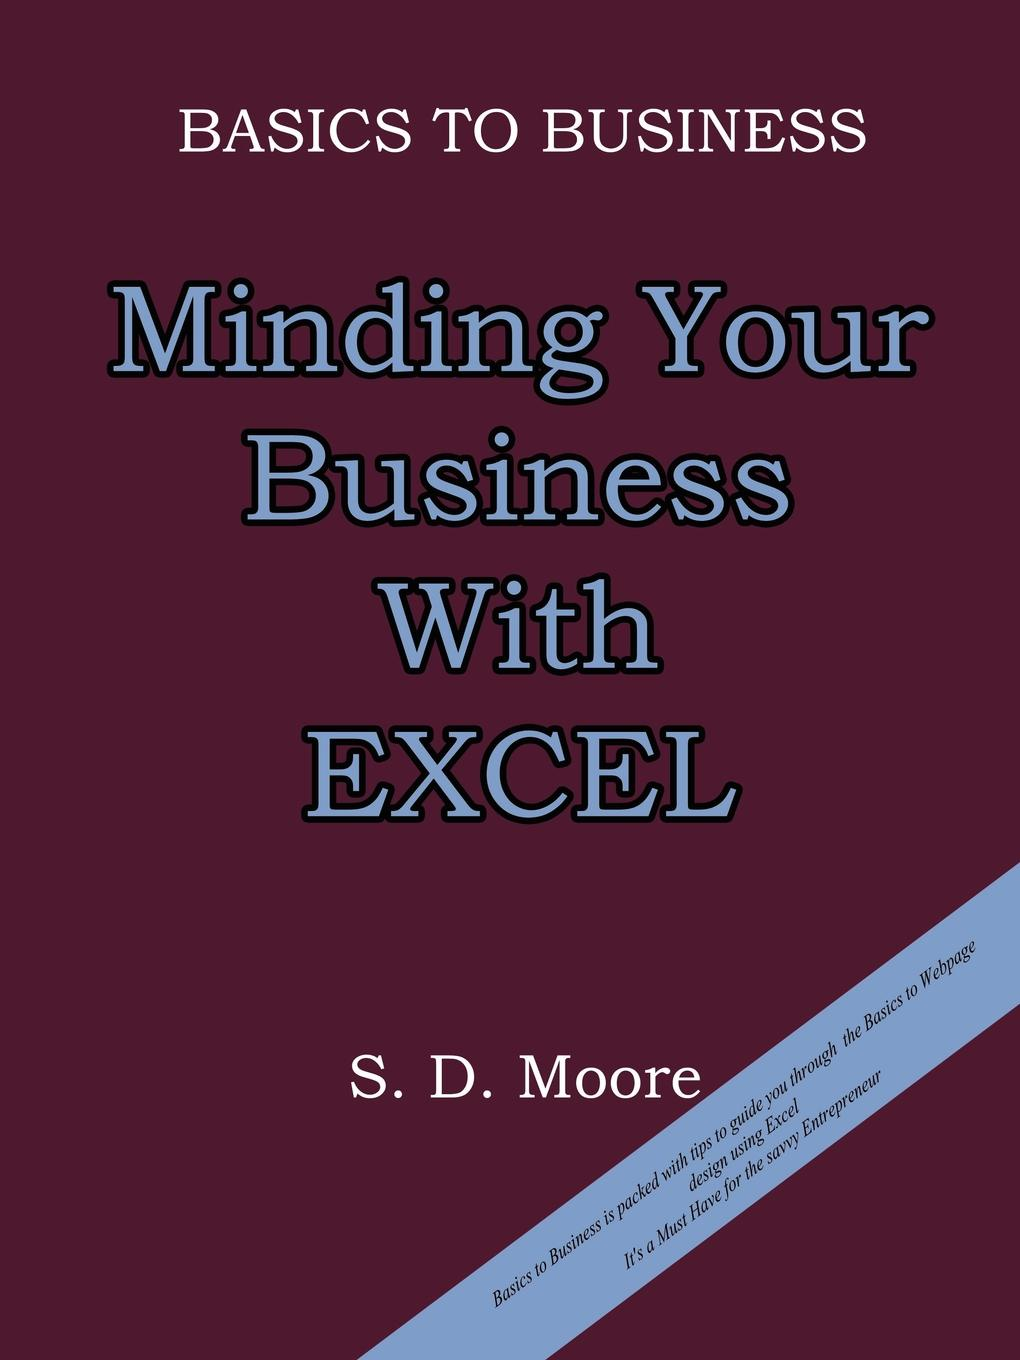 S. D. Moore BASICS TO BUSINESS. MINDING YOUR BUSINESS WITH EXCEL